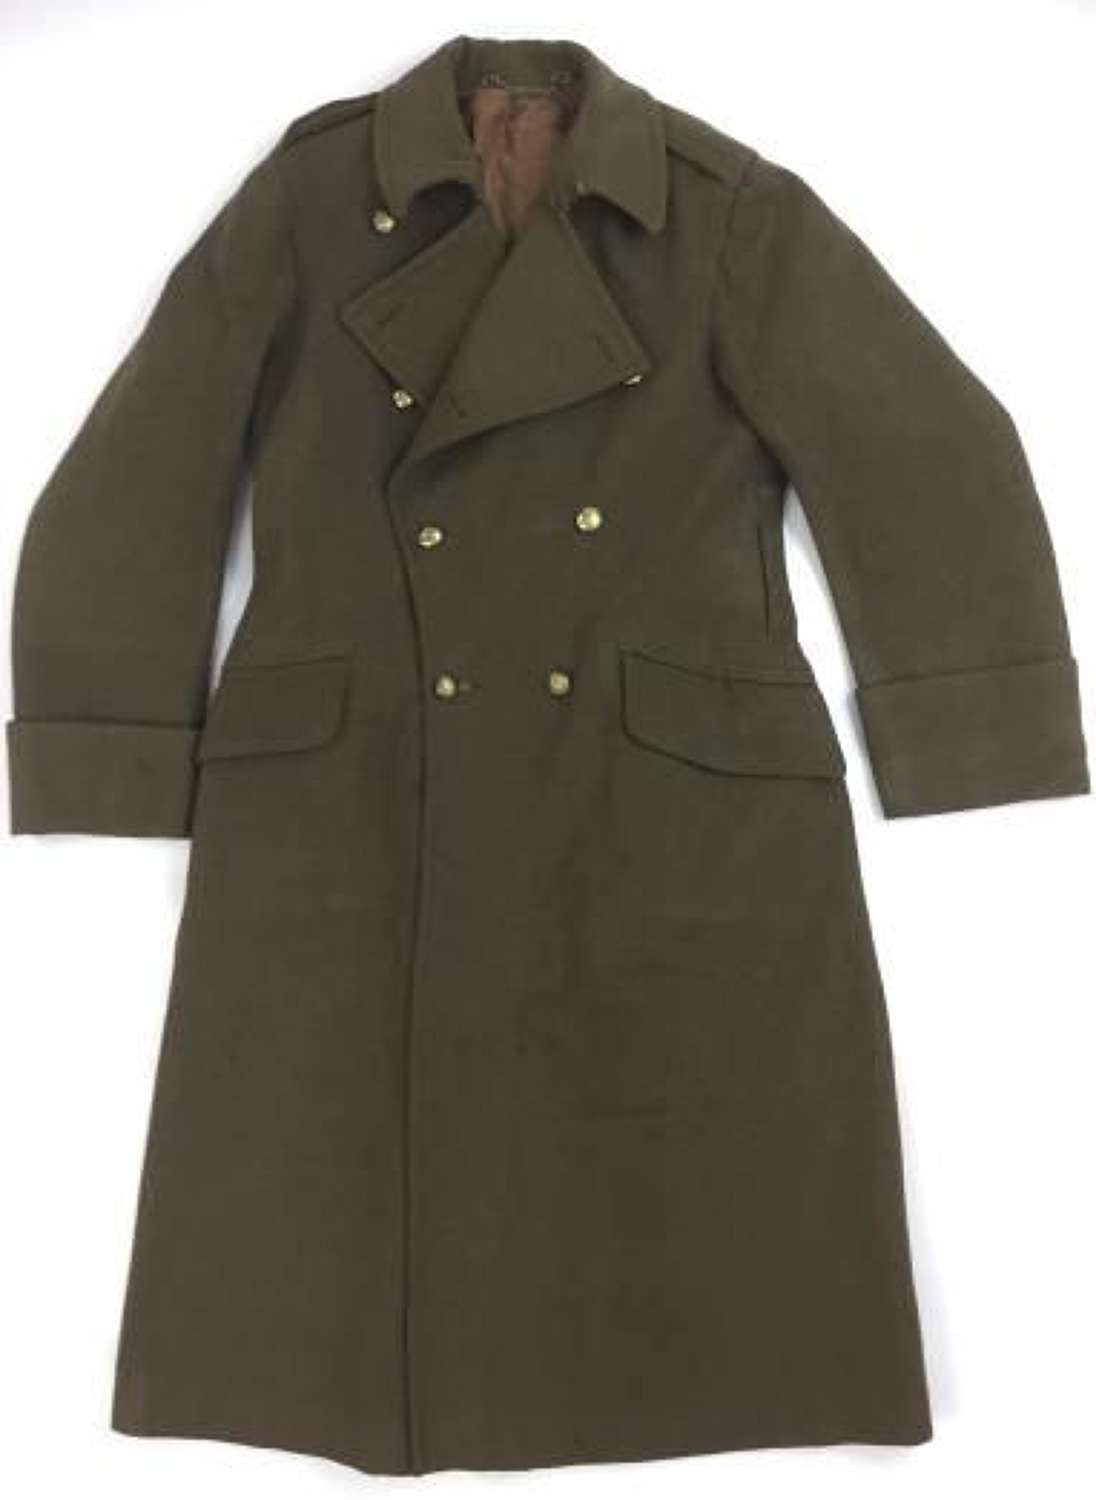 Original 1941 Dated British Army Officers Greatcoat - Royal Artillery